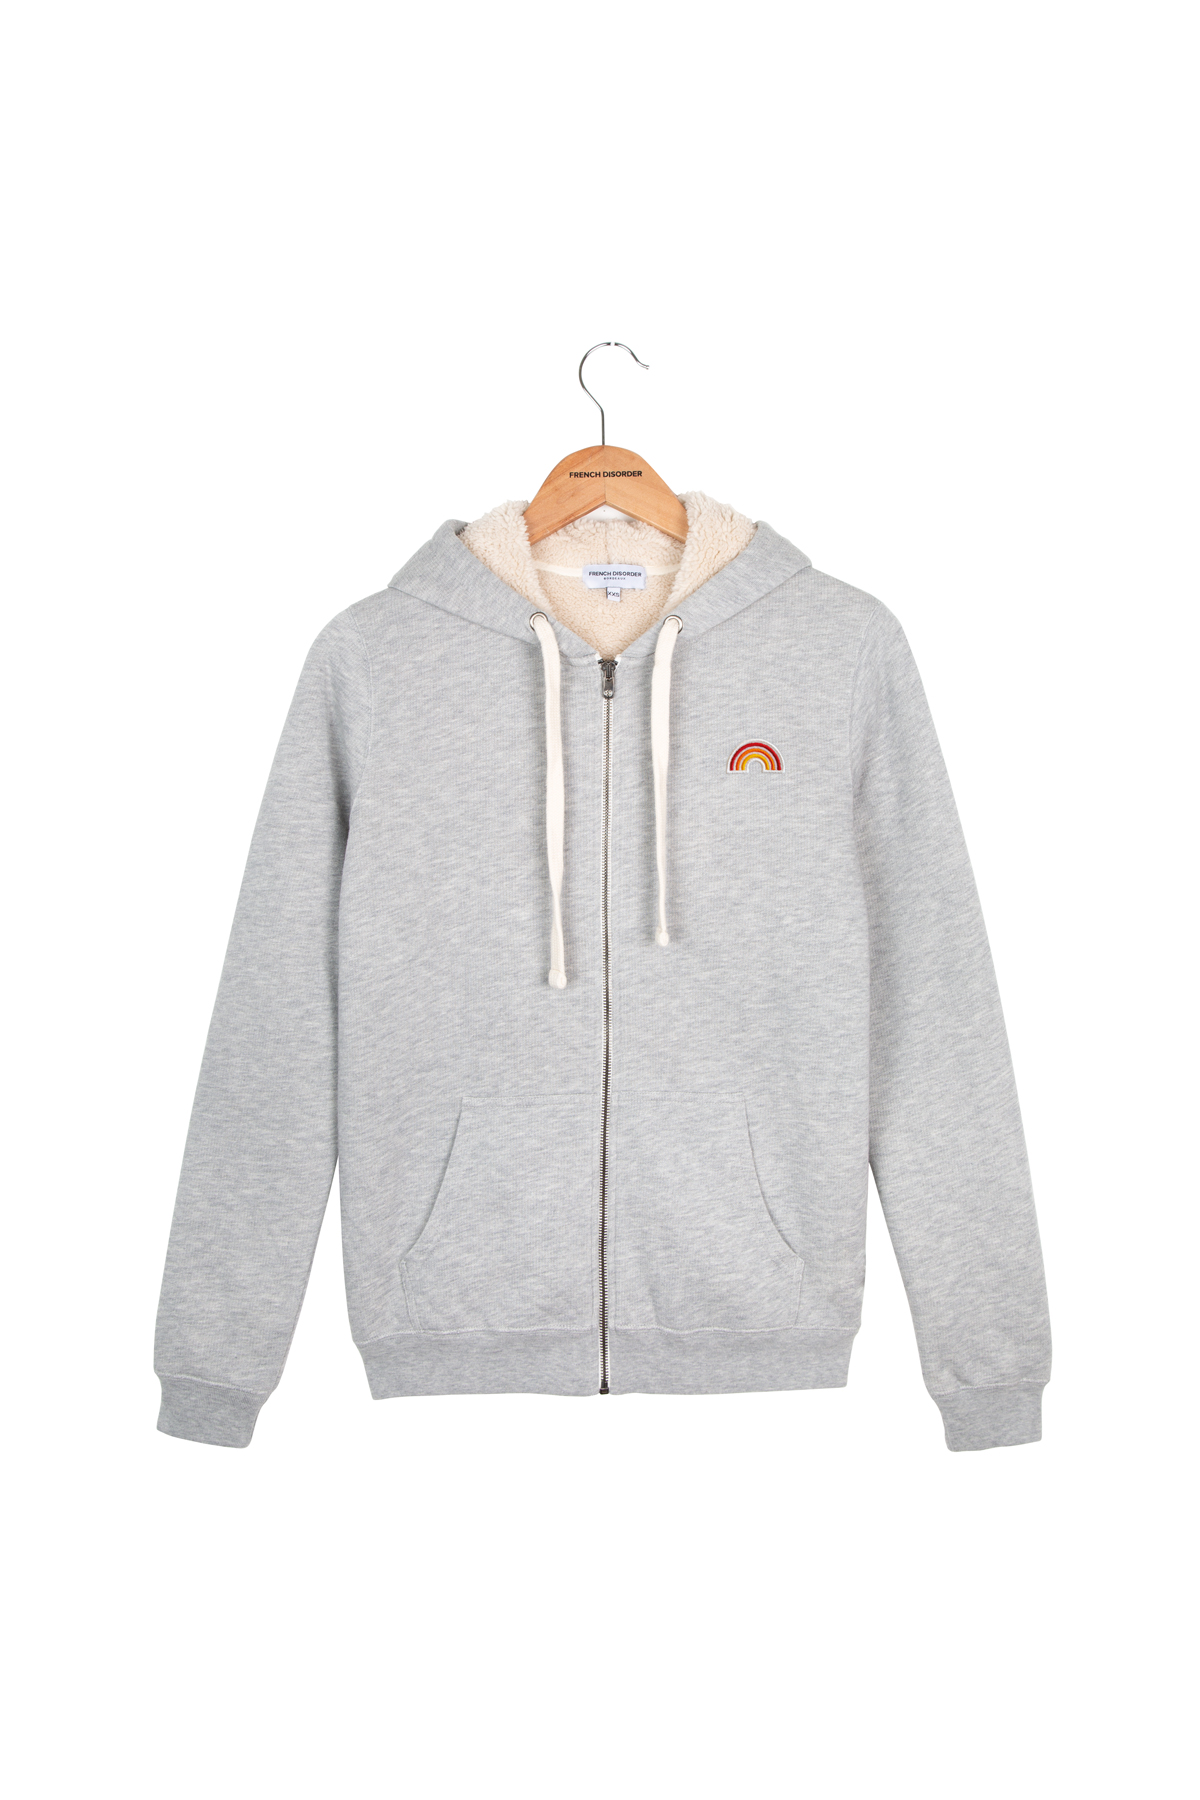 Photo de VESTE Hoodie Sherpa Robin Homme chez French Disorder